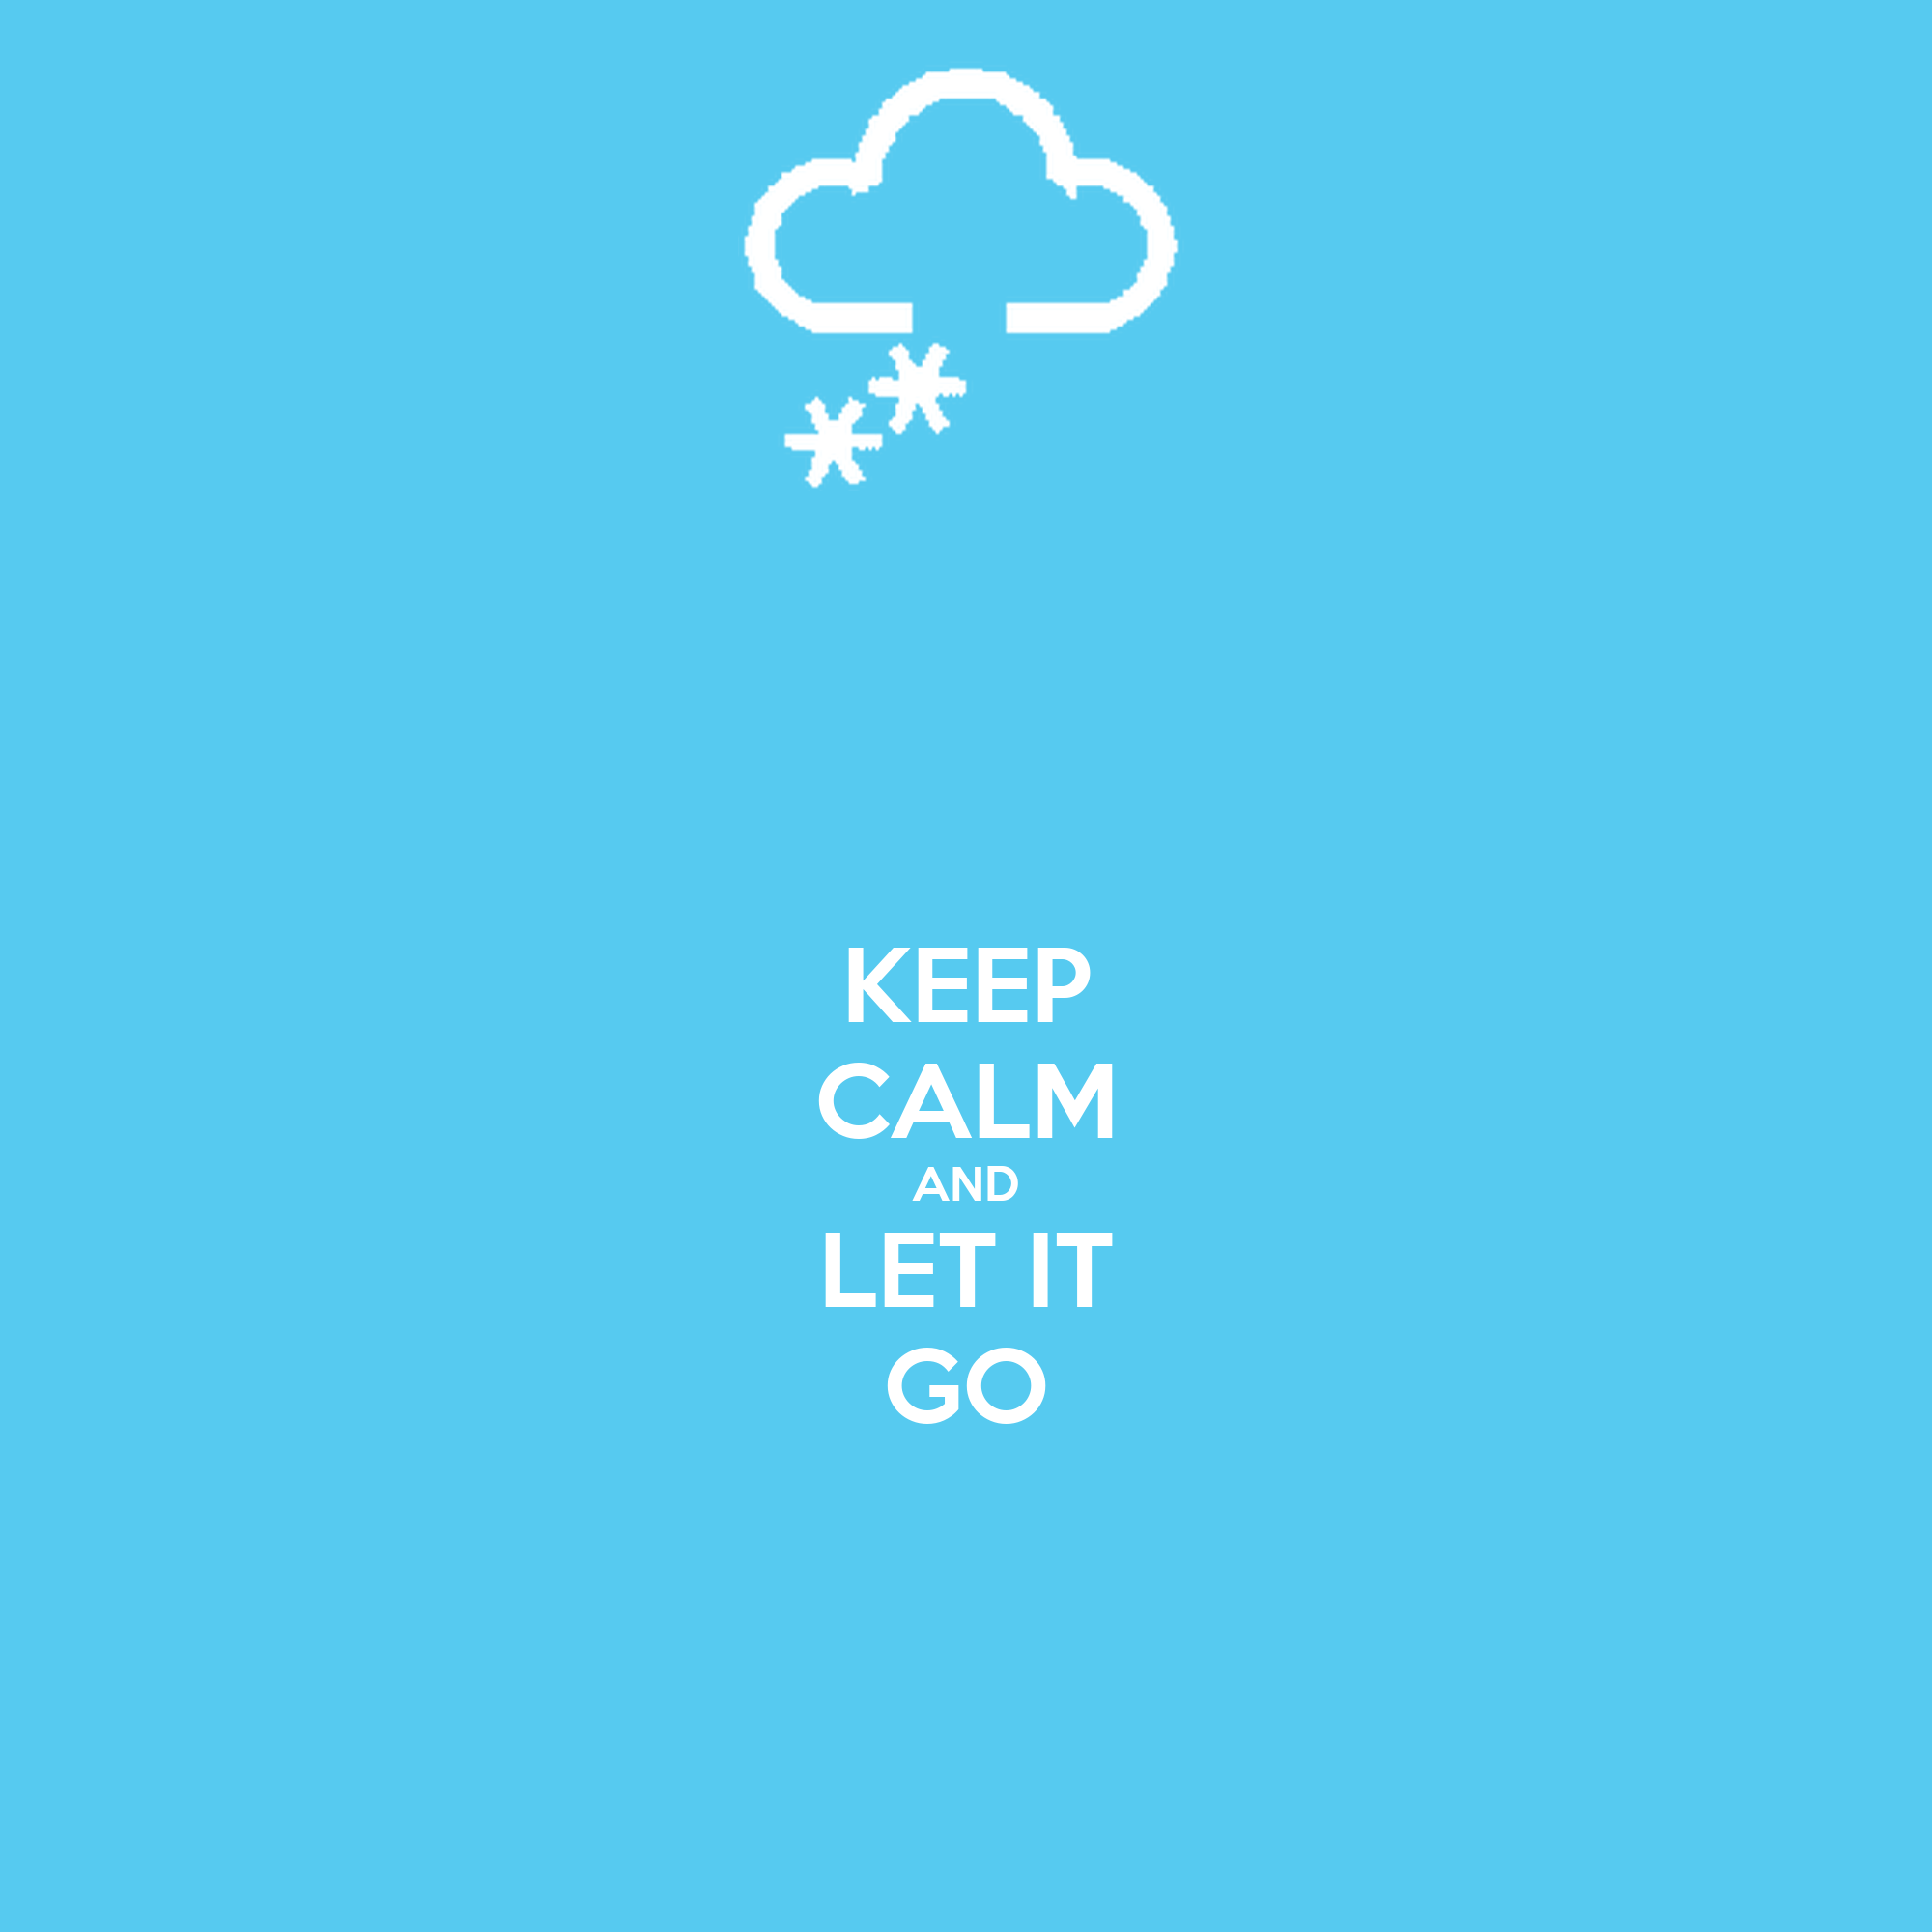 Keep calm and let it go keep calm and carry on image generator